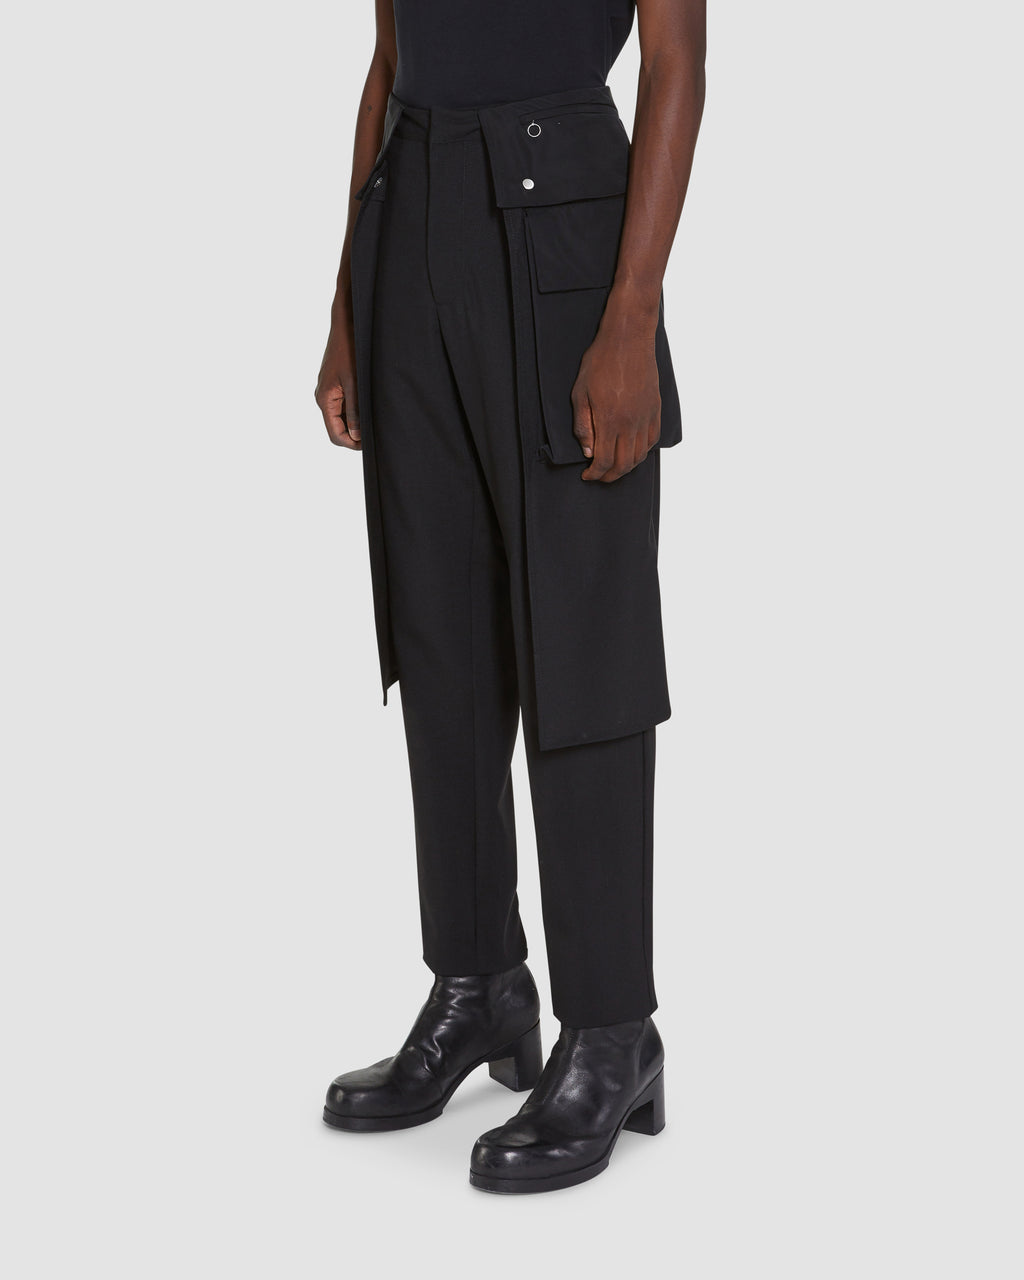 MOROCCO POCKET PANT